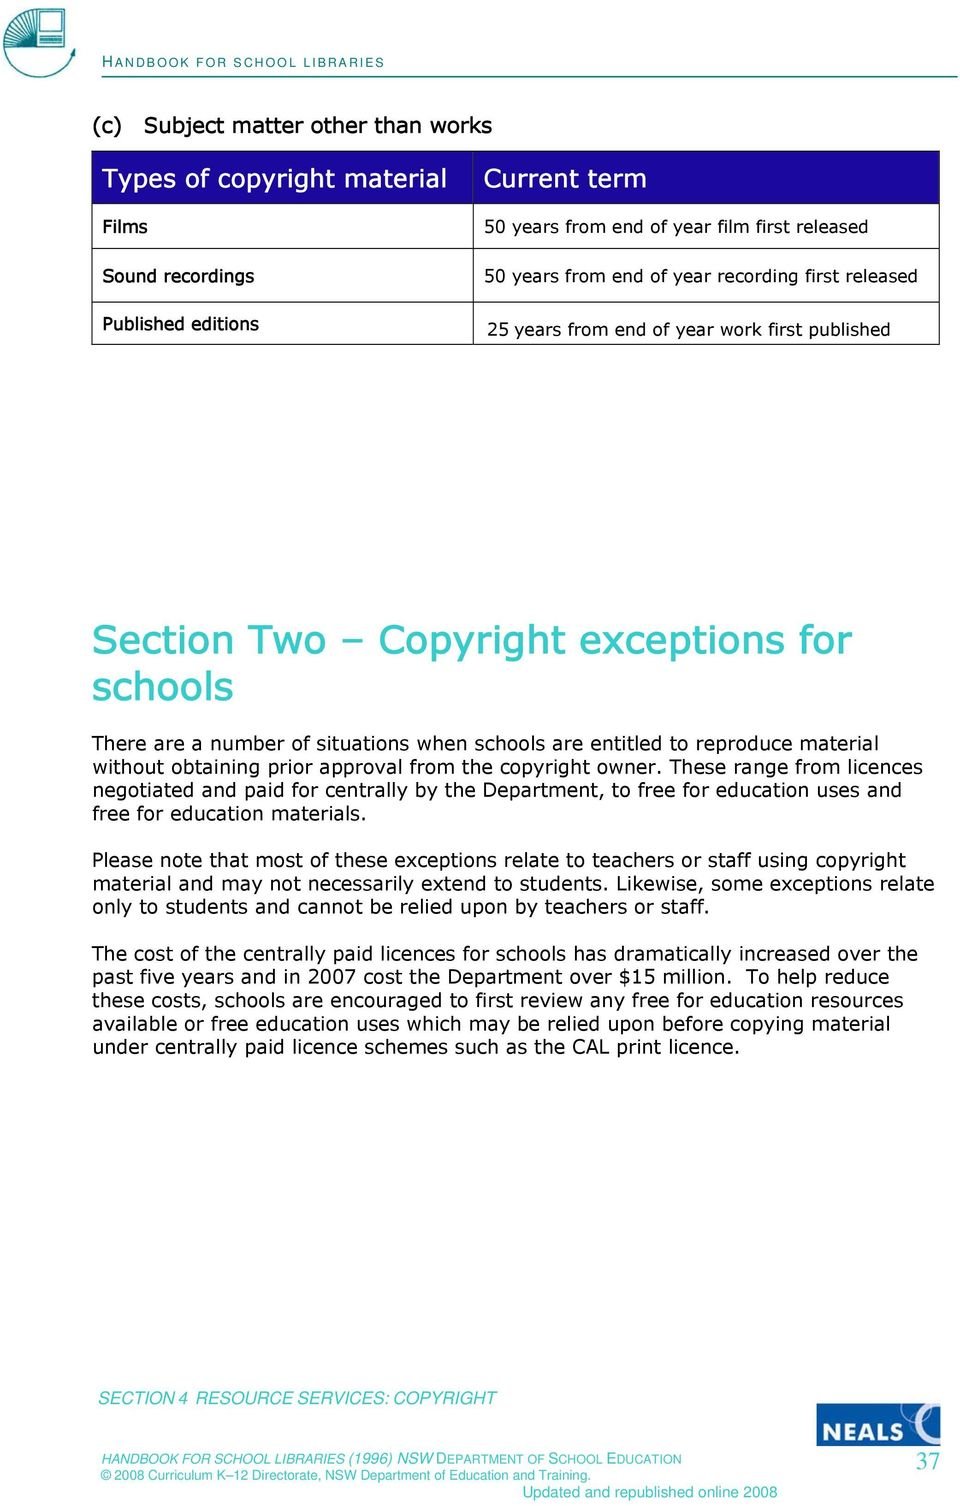 without obtaining prior approval from the copyright owner. These range from licences negotiated and paid for centrally by the Department, to free for education uses and free for education materials.